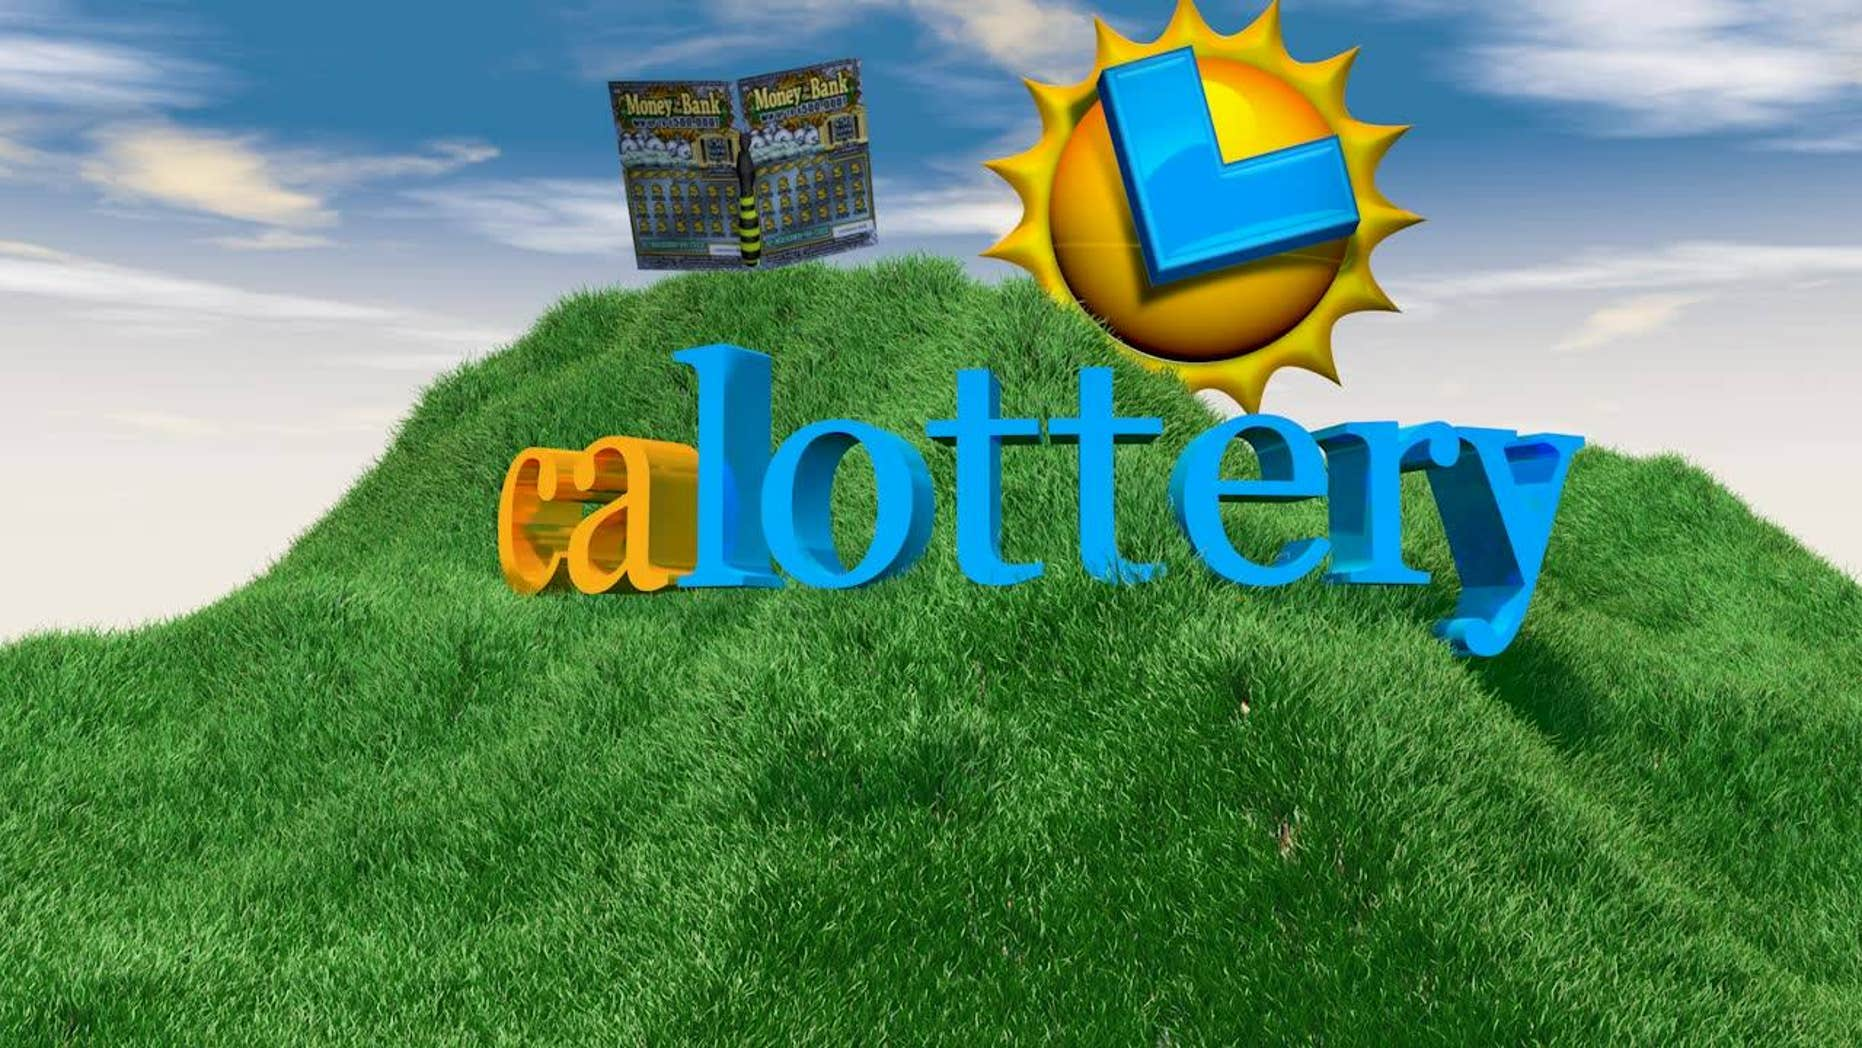 Officials with the California Lottery have not responded to allegations of inappropriate behavior by some top officials.